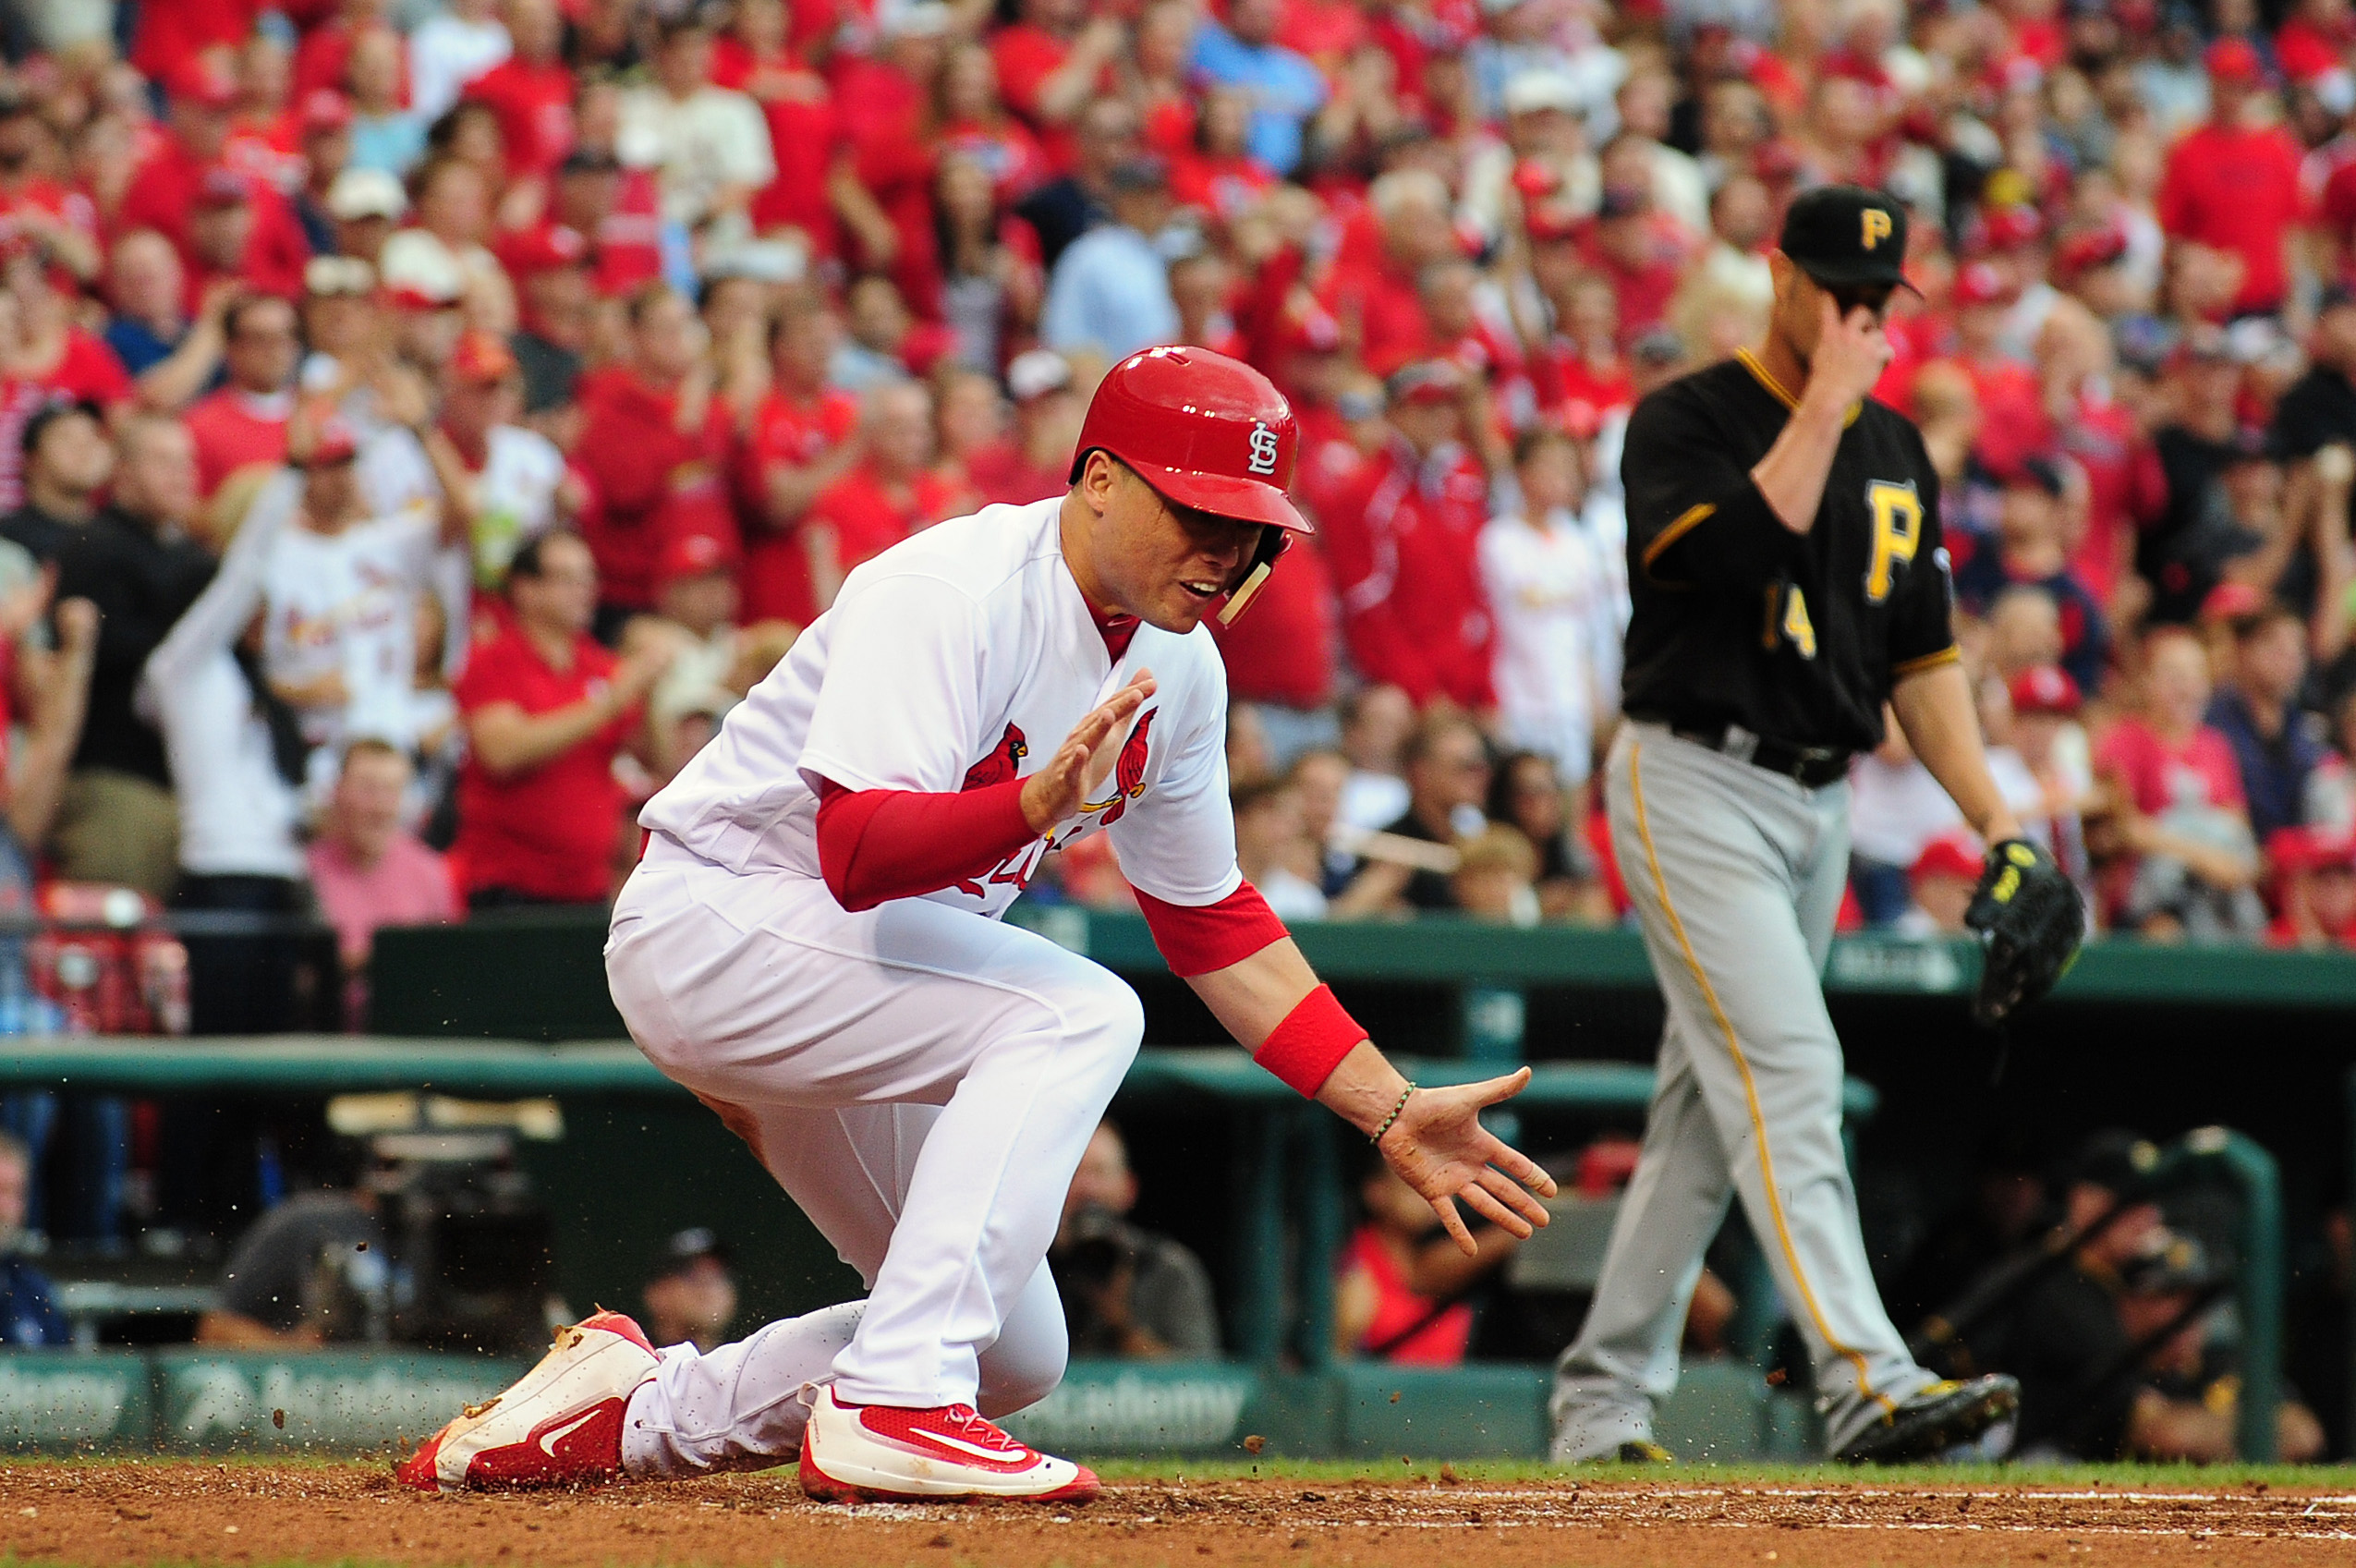 9585811-mlb-pittsburgh-pirates-at-st.-louis-cardinals